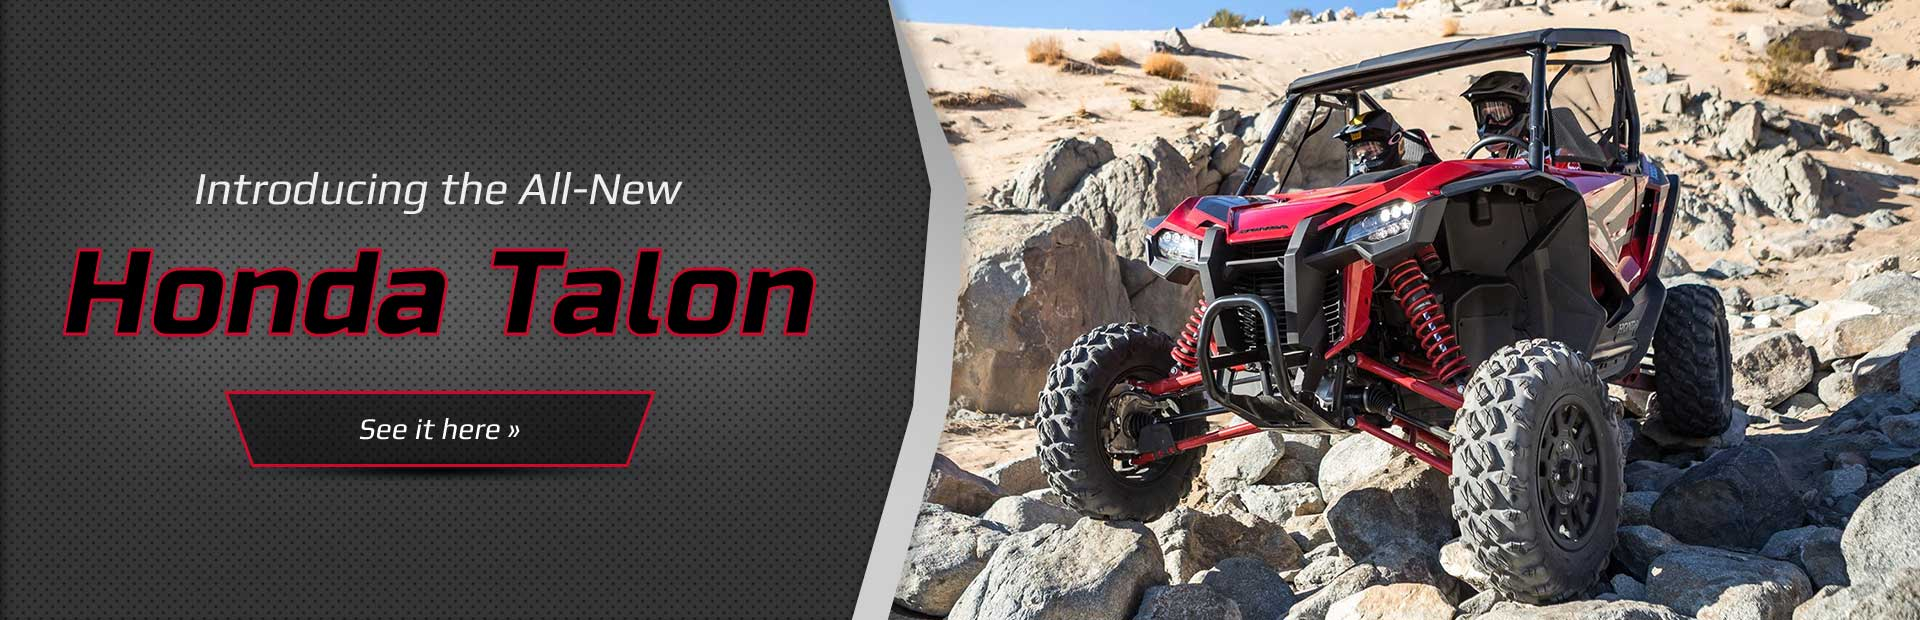 Introducing the All-New Honda Talon